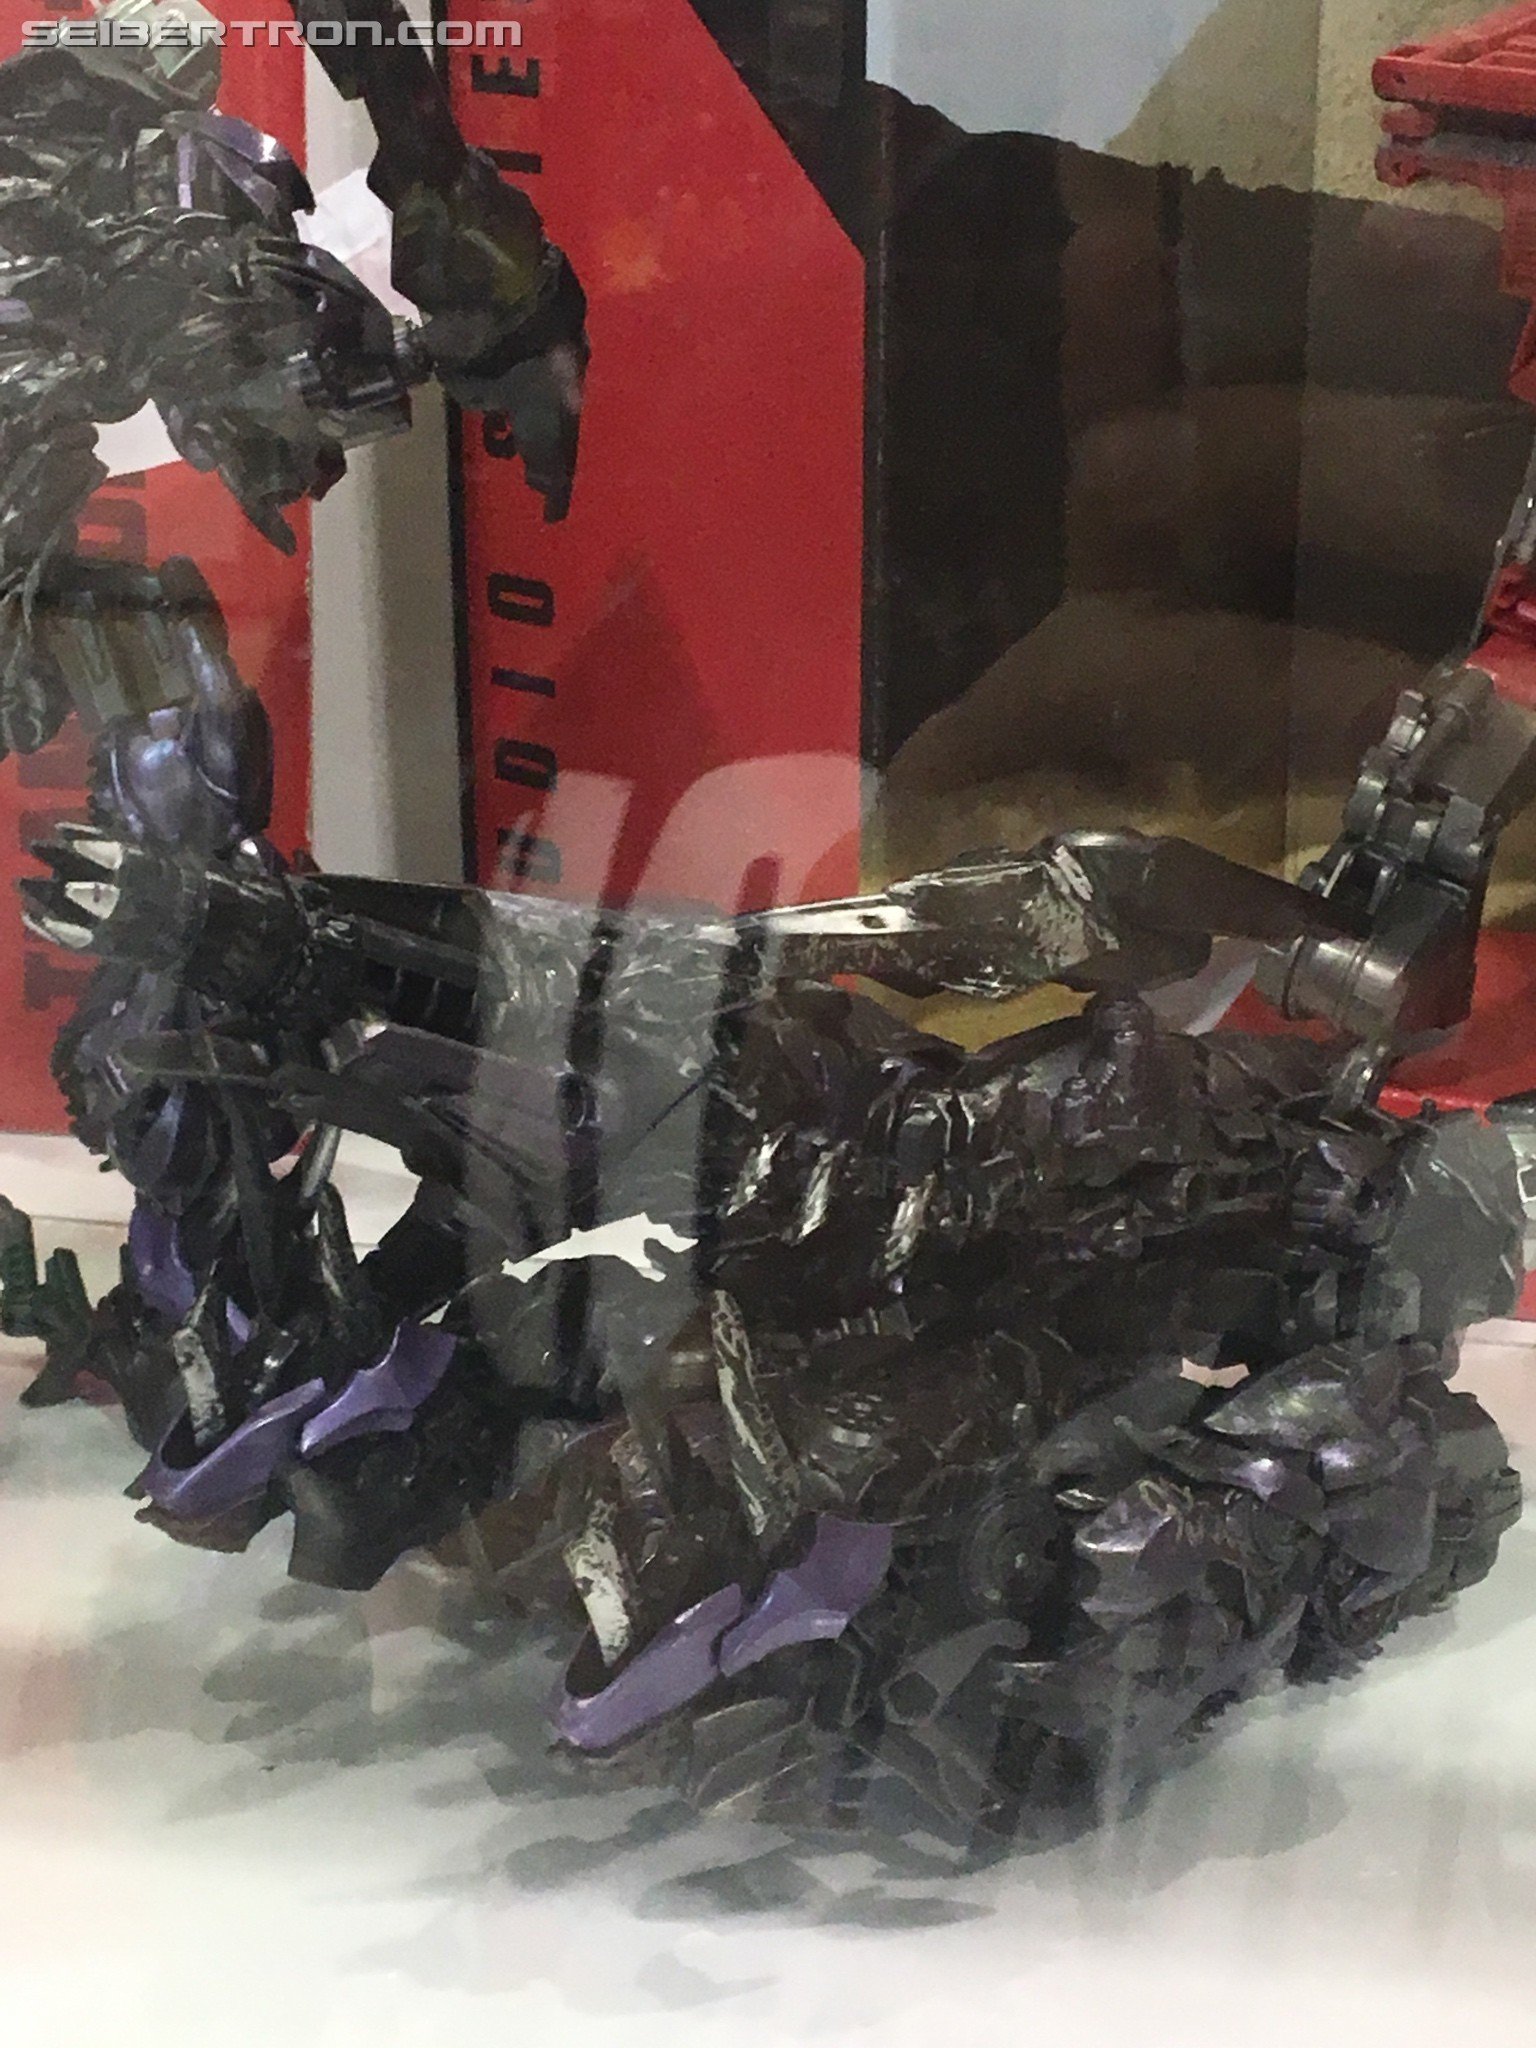 Transformers News: New Images of Latest Studio Series Reveals Gives a Good Look at Where the Demolishor Threads Go